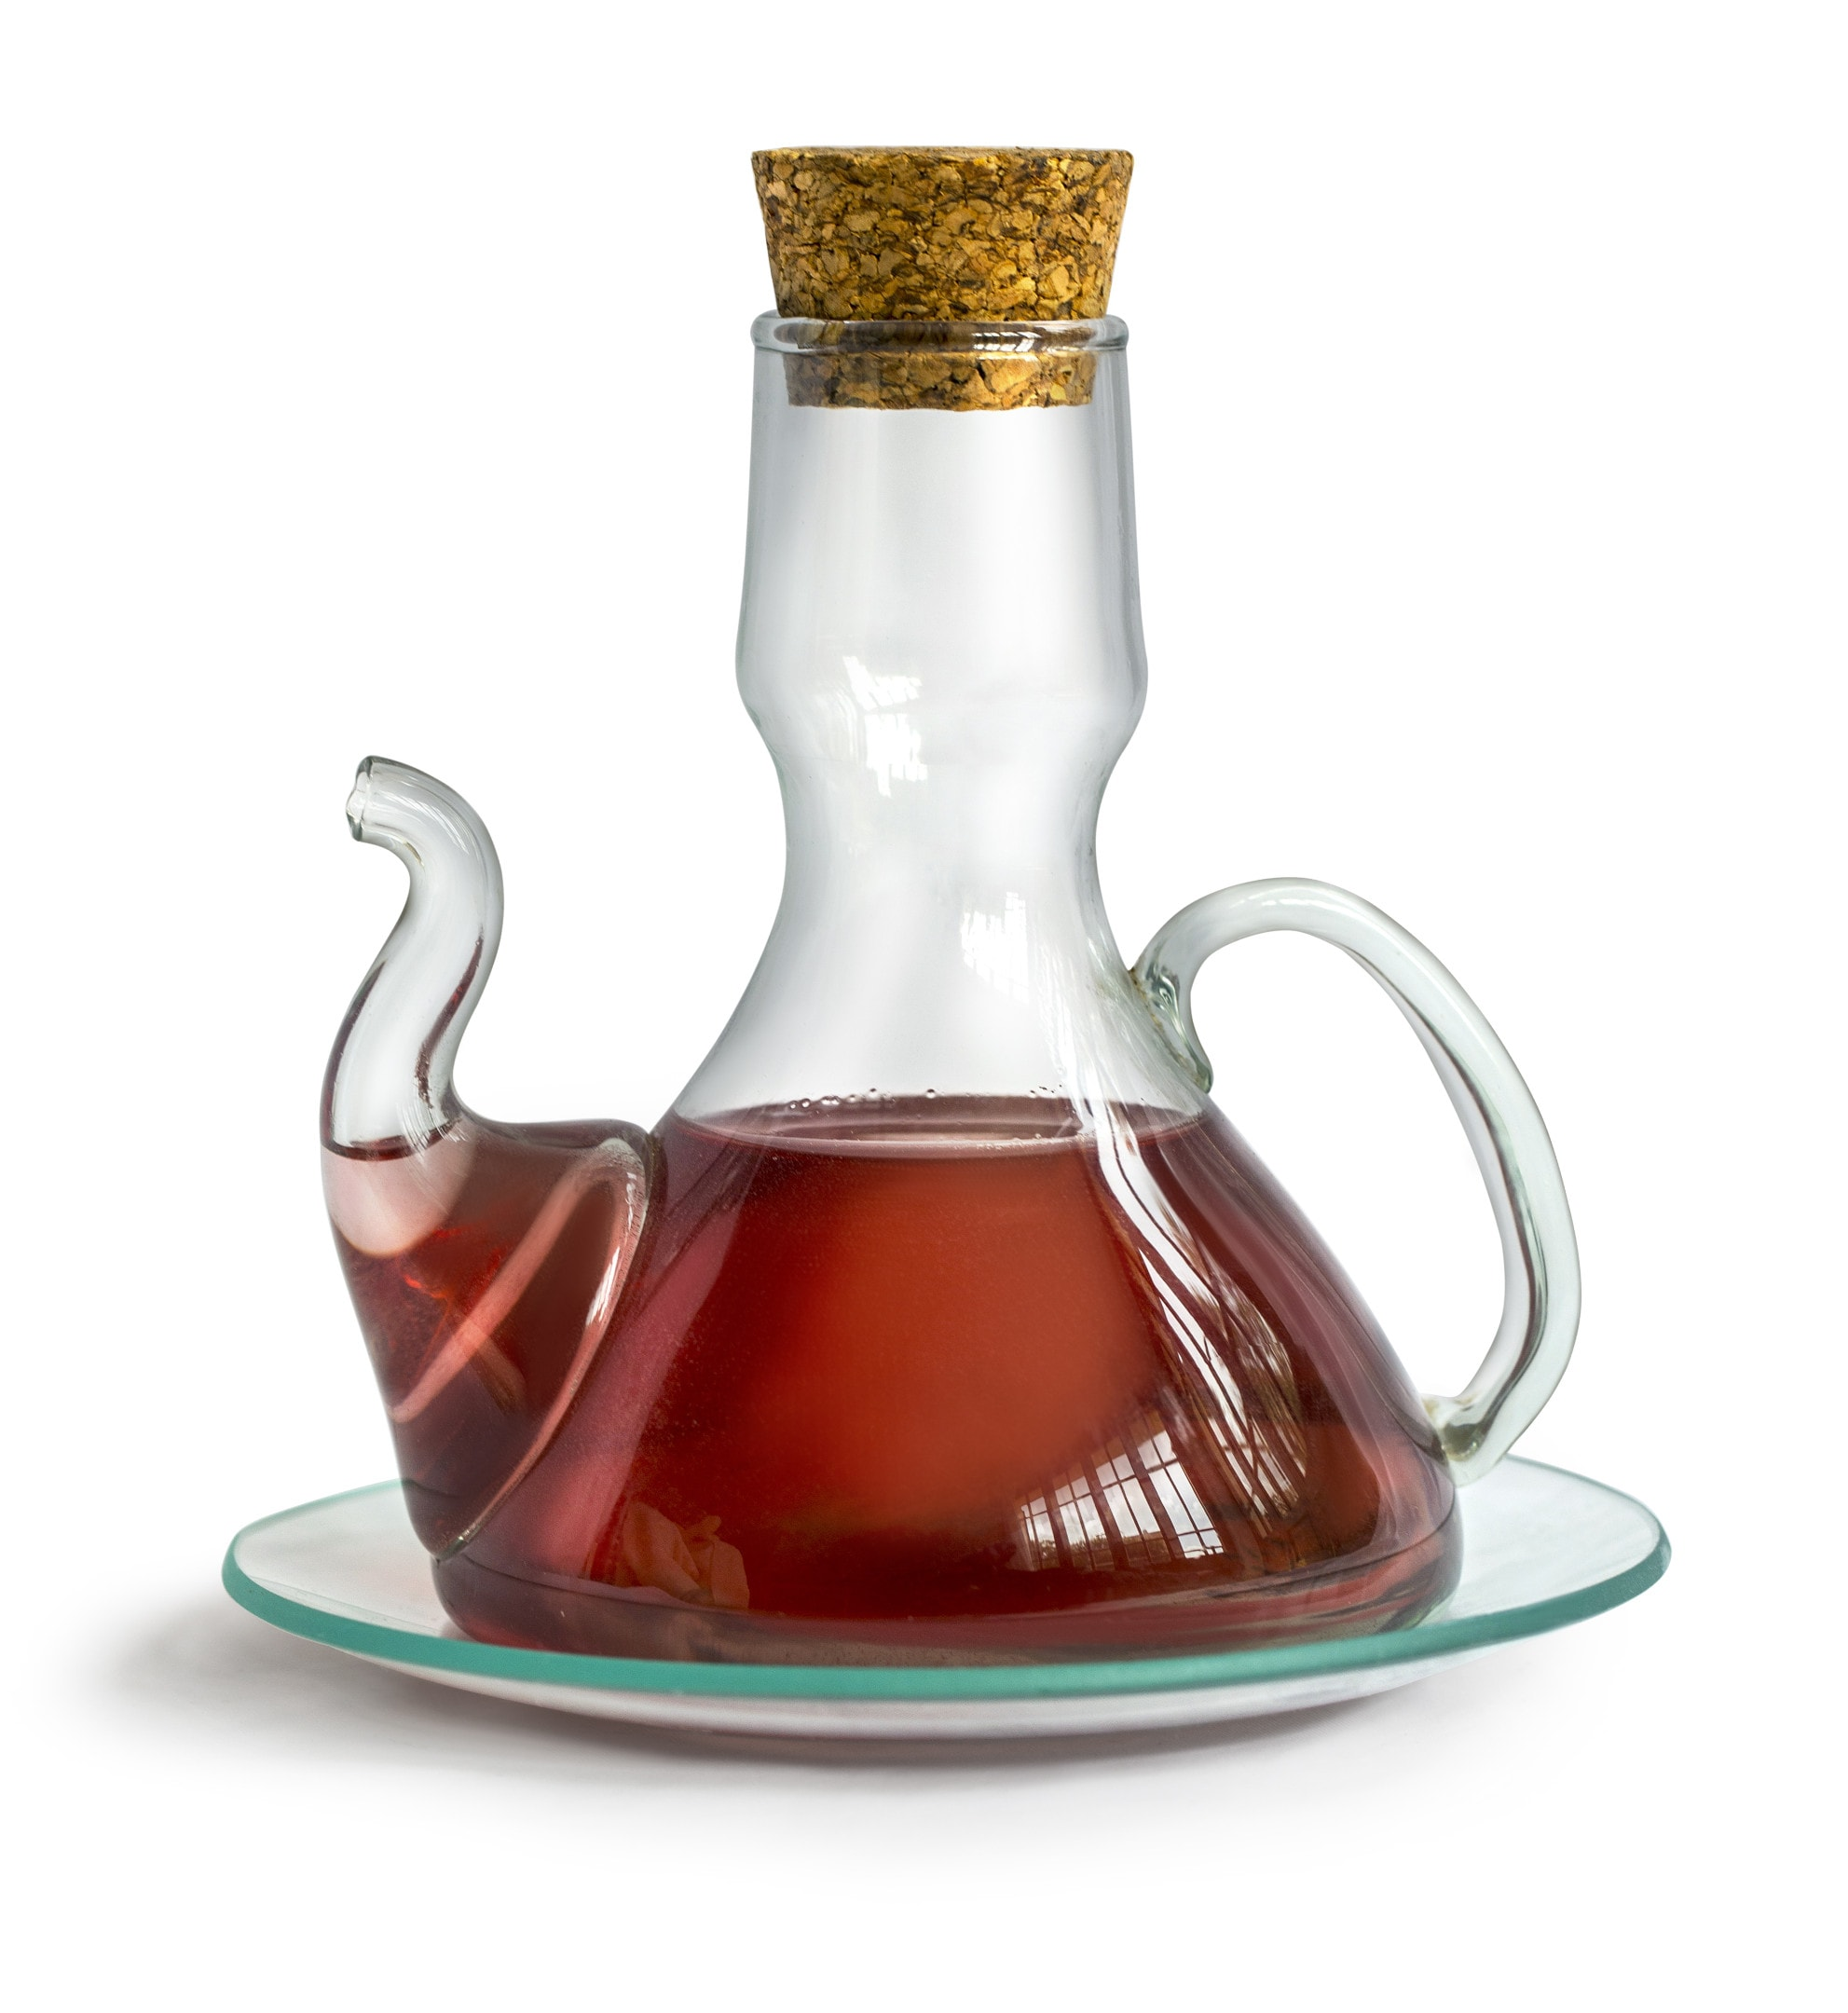 Decanter with sherry vinegar isolated white